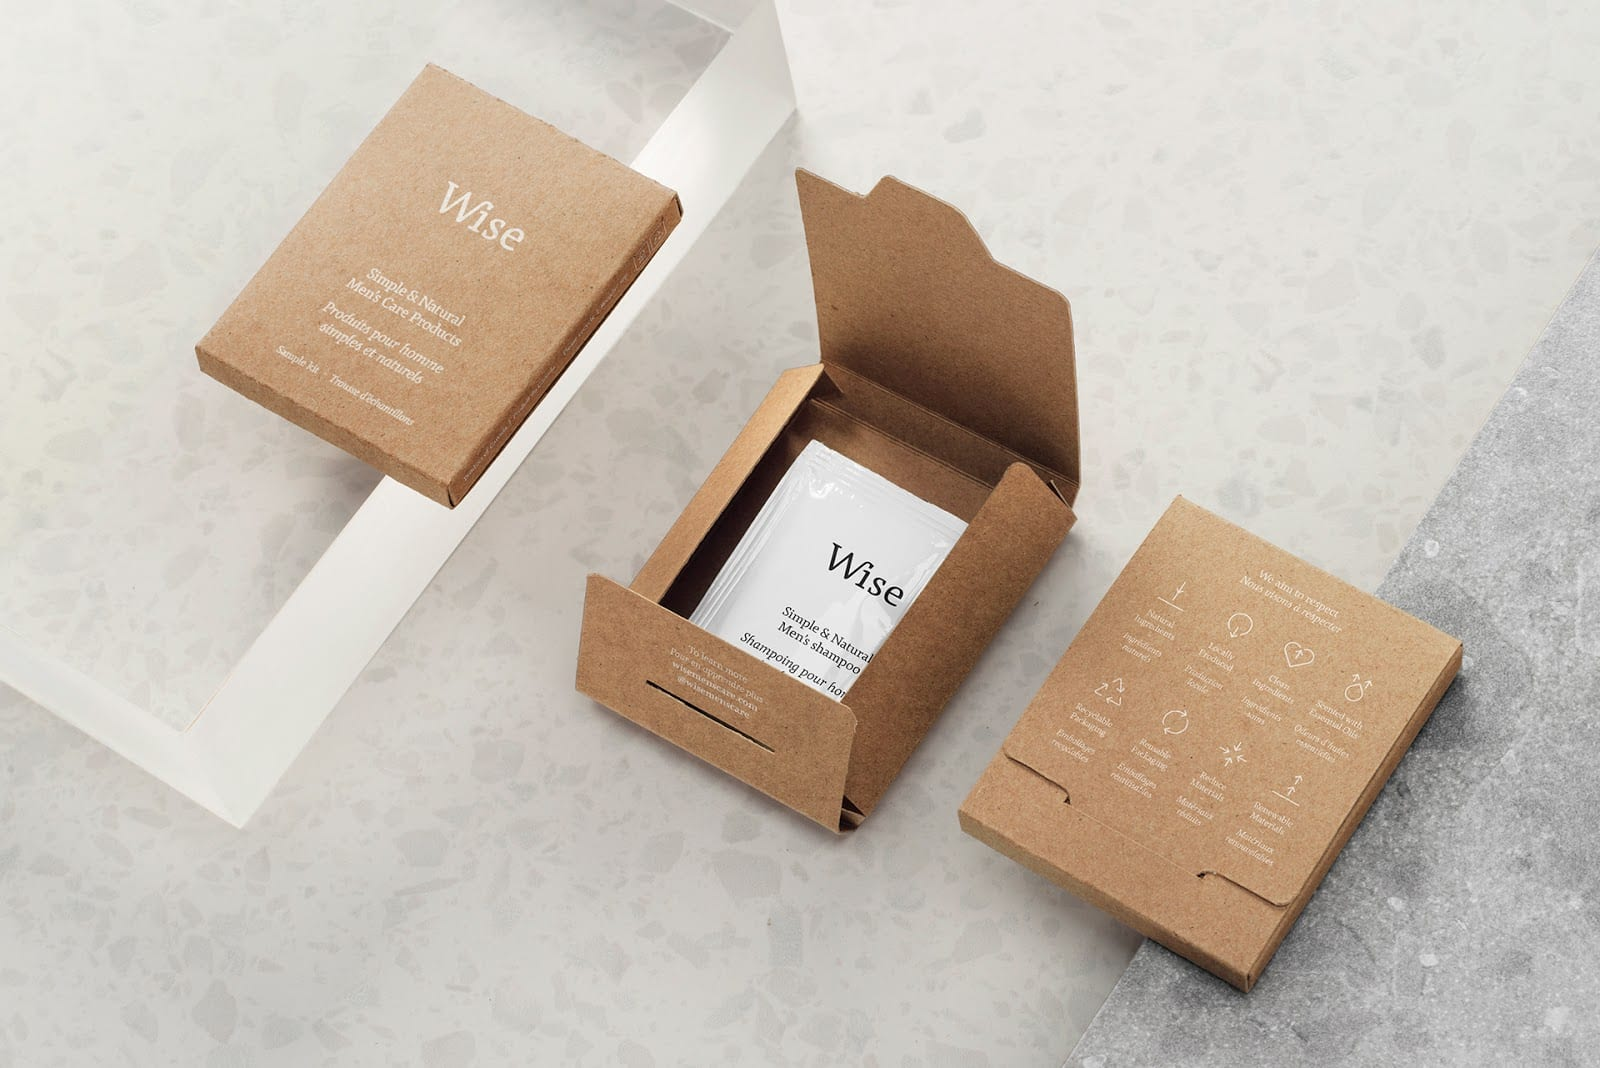 Wise Mens Care Brand Identity and Packaging 015 - Ach, tie obaly – péče Wise Men